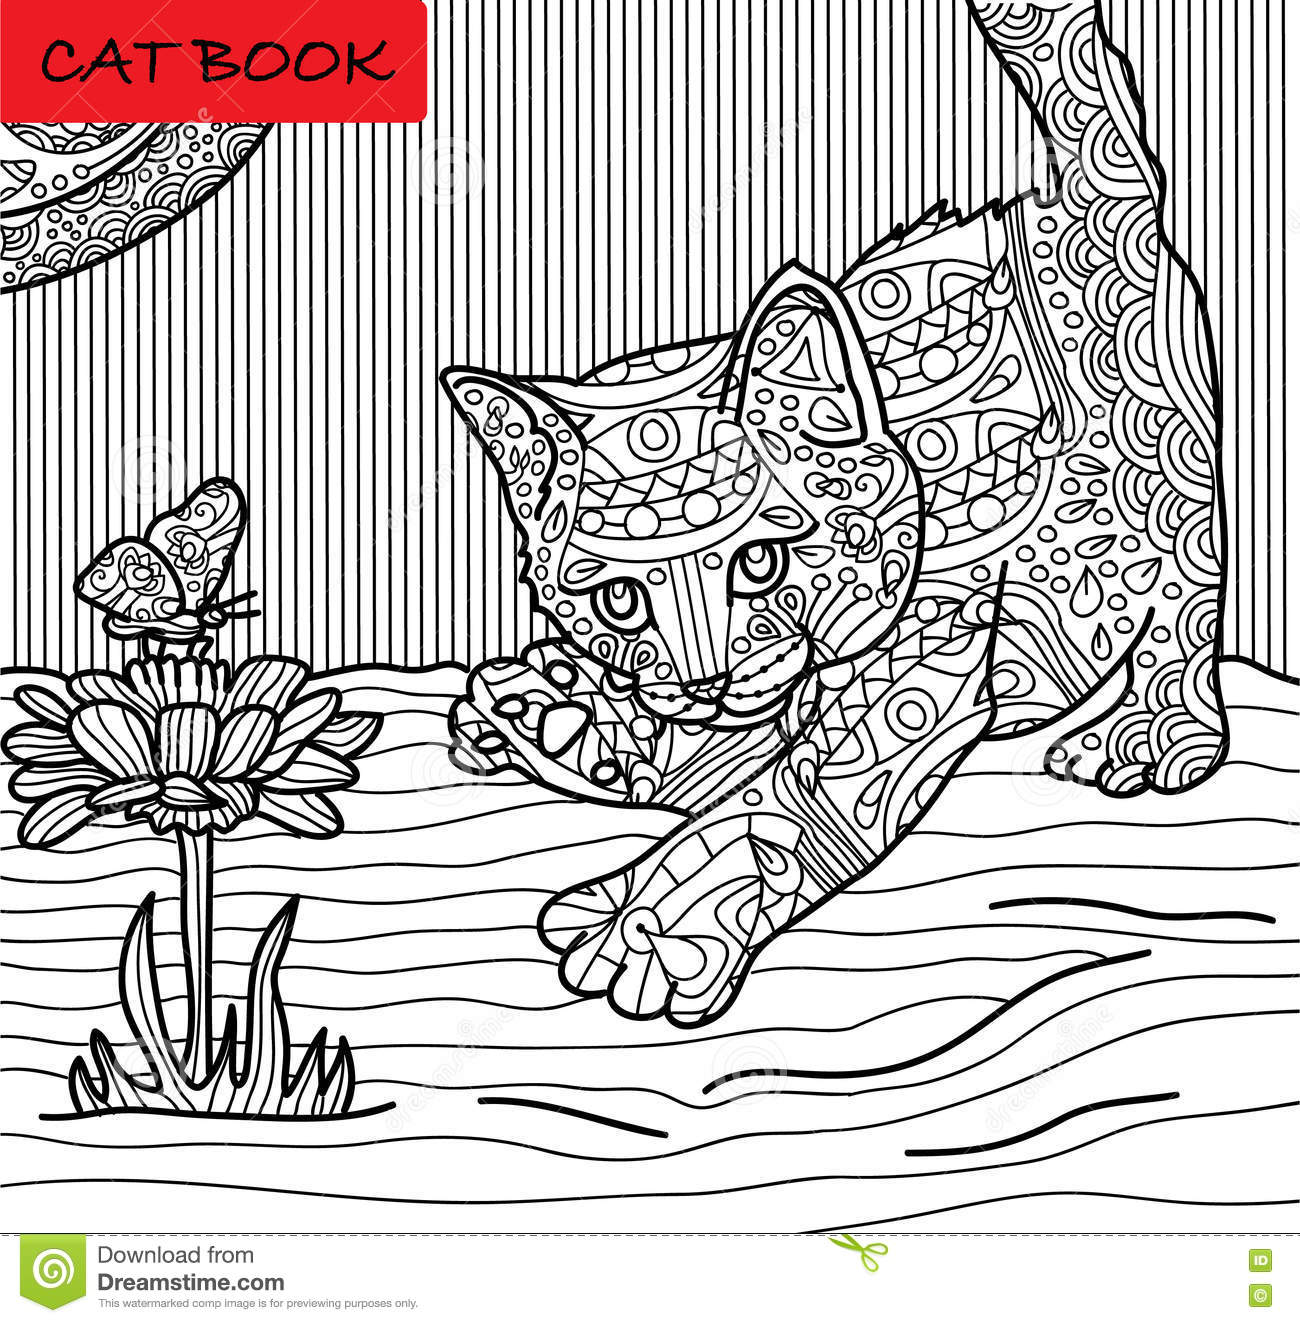 Zen cat coloring page - Coloring Cat Page For Adults Kitten Hunts On A Butterfly Hand Drawn Illustration With Patterns